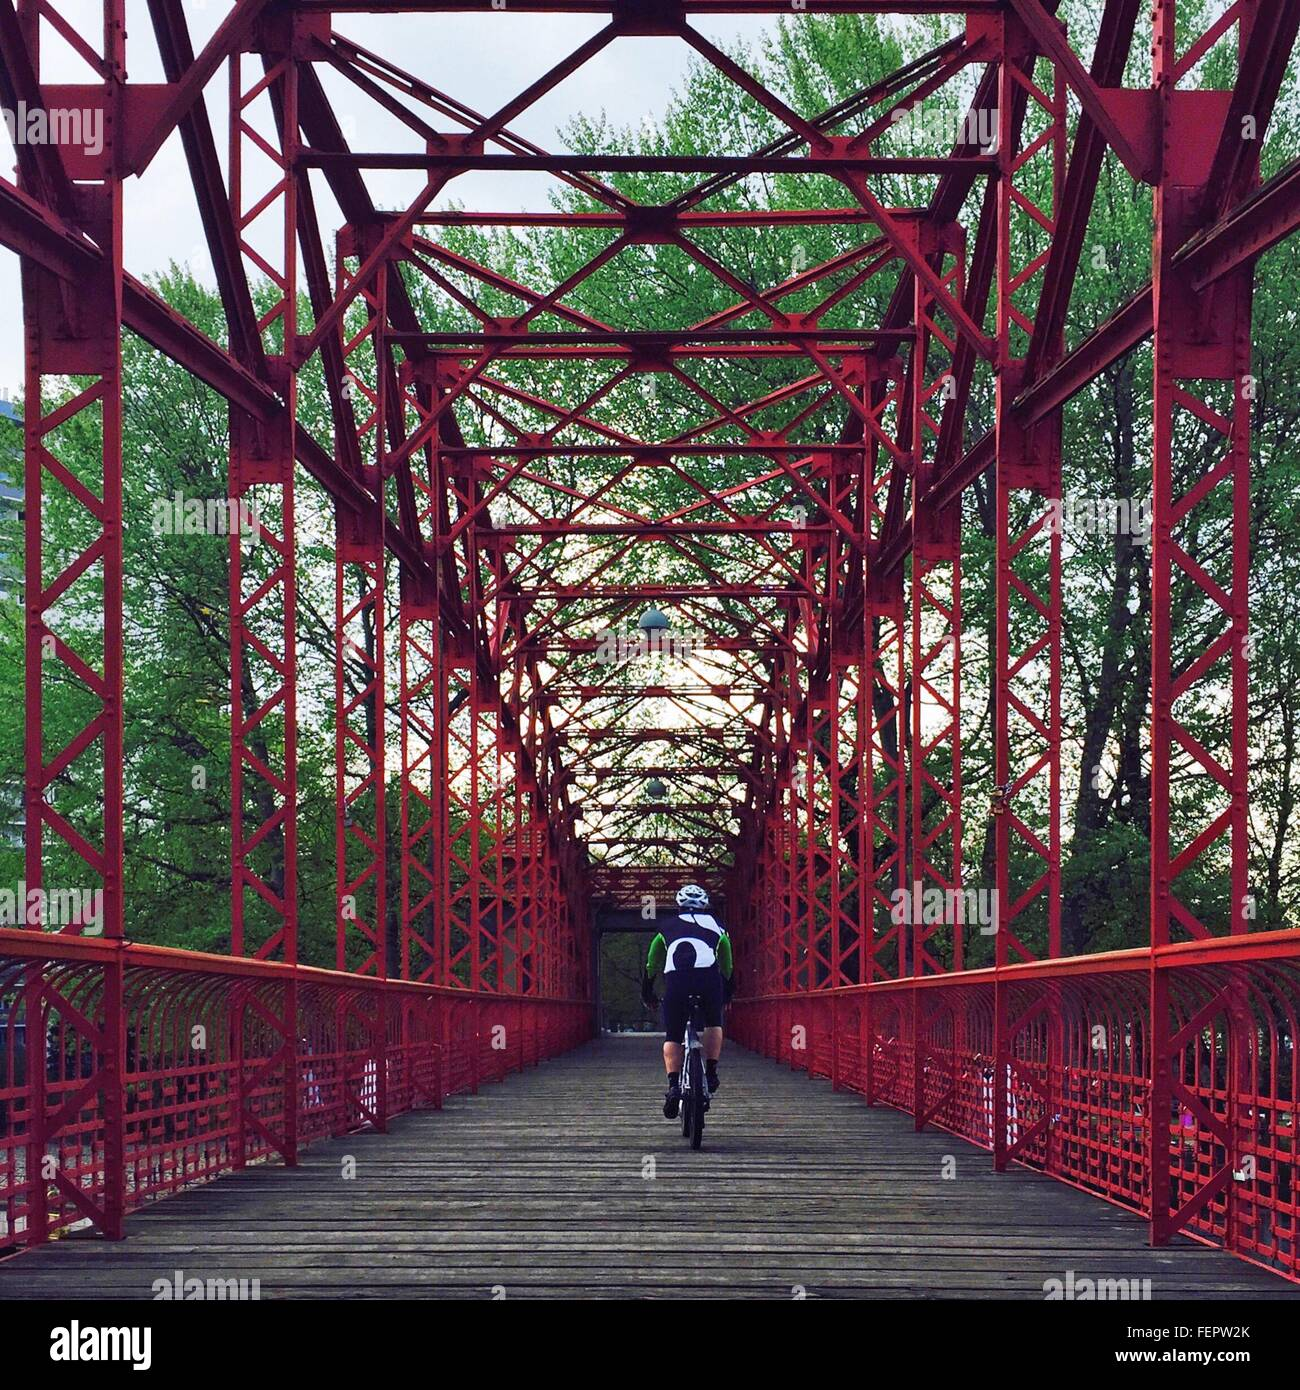 Rear View Of A Man Bicycling On Bridge - Stock Image